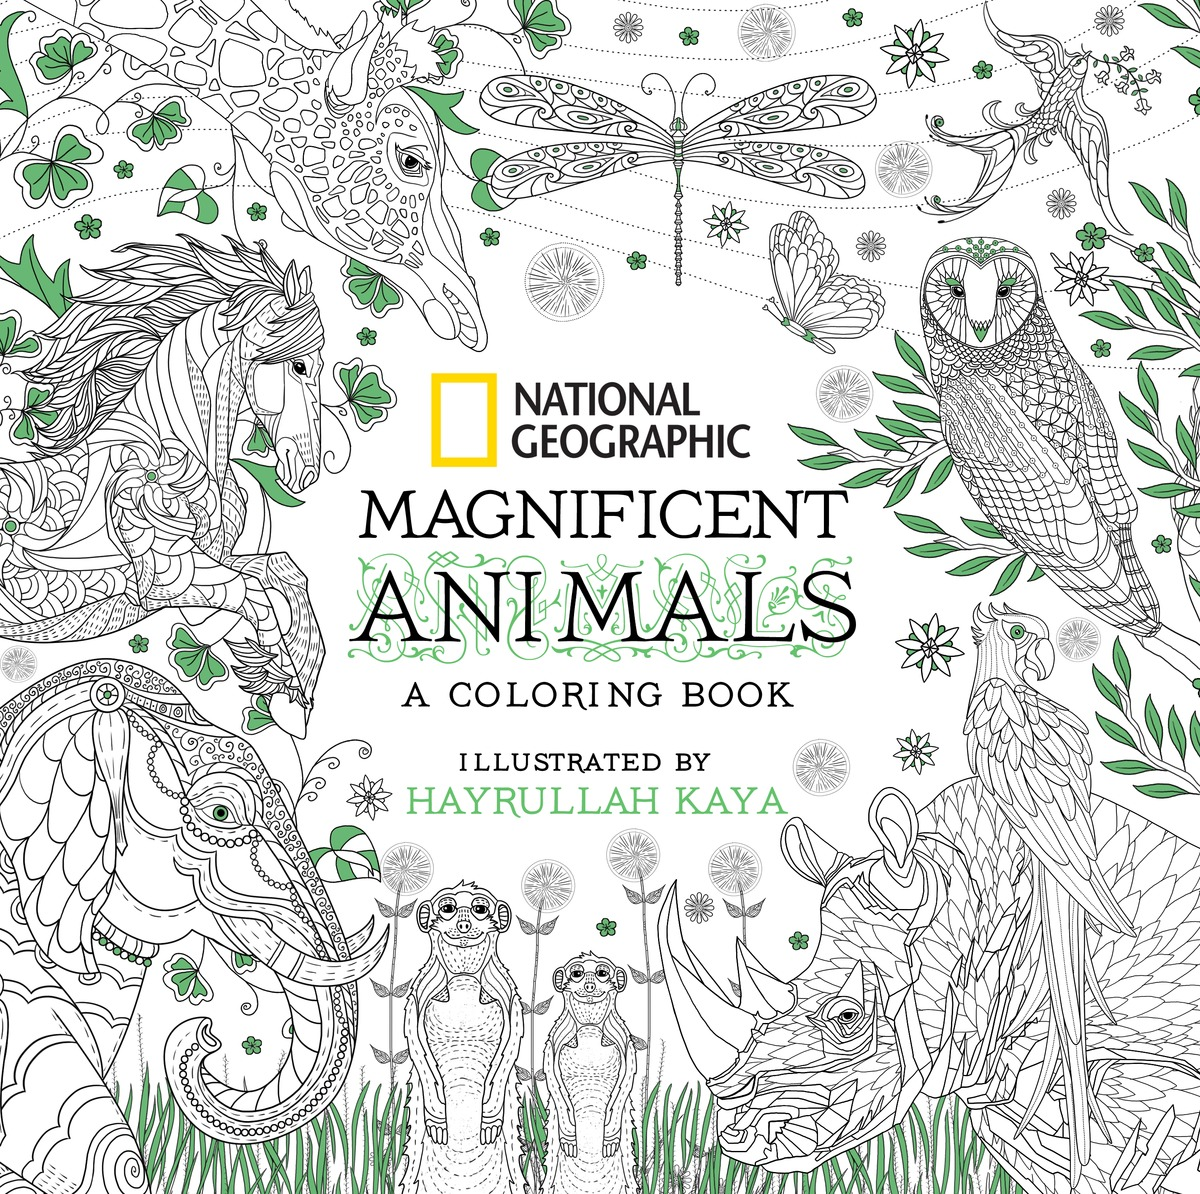 National Geographic Magnificent Animals: A Coloring Book color the classics anne of green gables a coloring book visit to avonlea